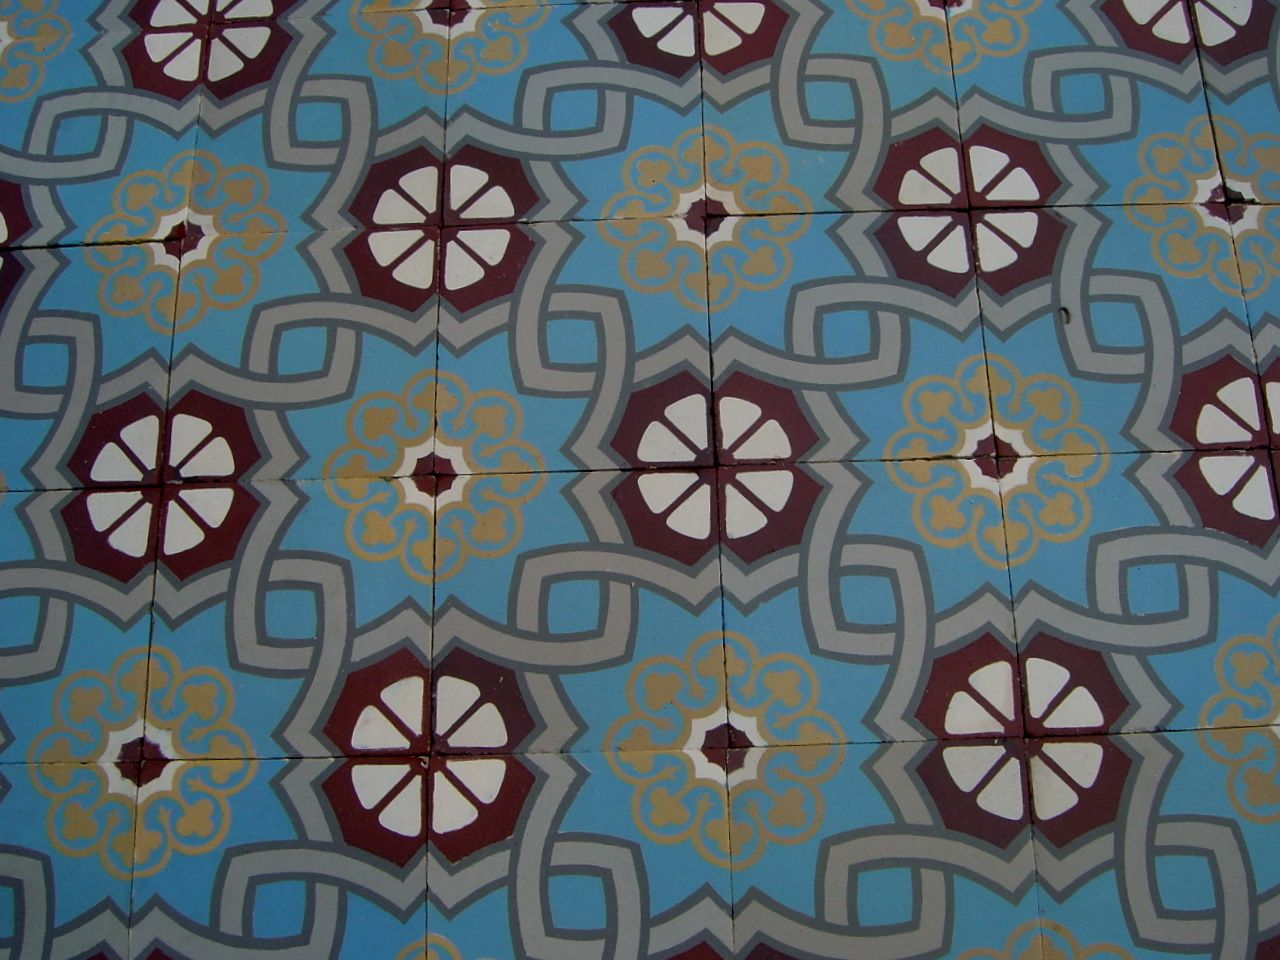 12.5m2 - Blue and Burgundy antique French ceramic floor c.1930 - The ...